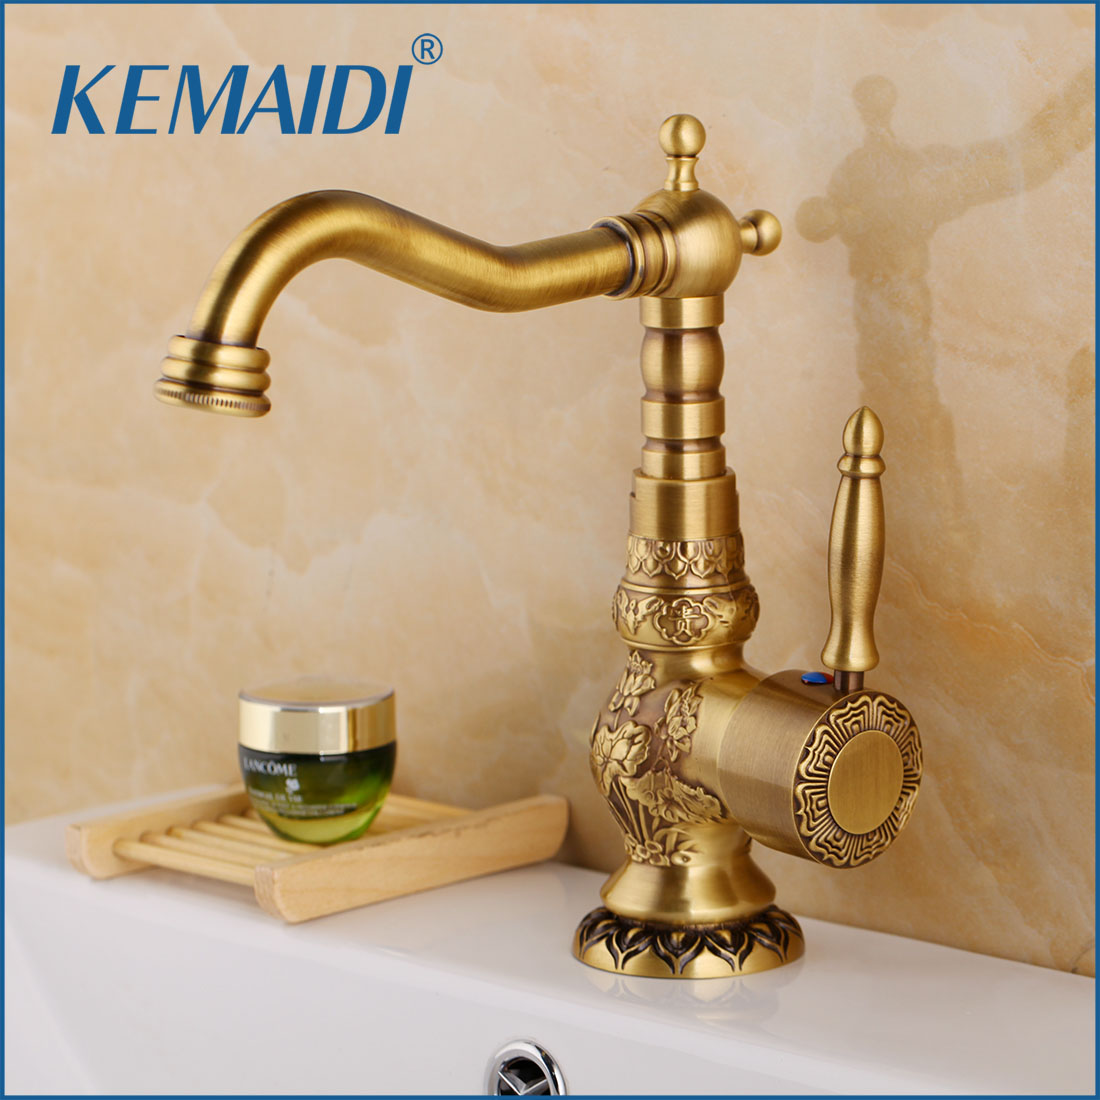 KEMAIDI Antique Brass Deck Mounted Basin Water Faucet With Single Handle One Hot And Cold Water Carved Bathroom Faucet kemaidi 3 pcs antique brass